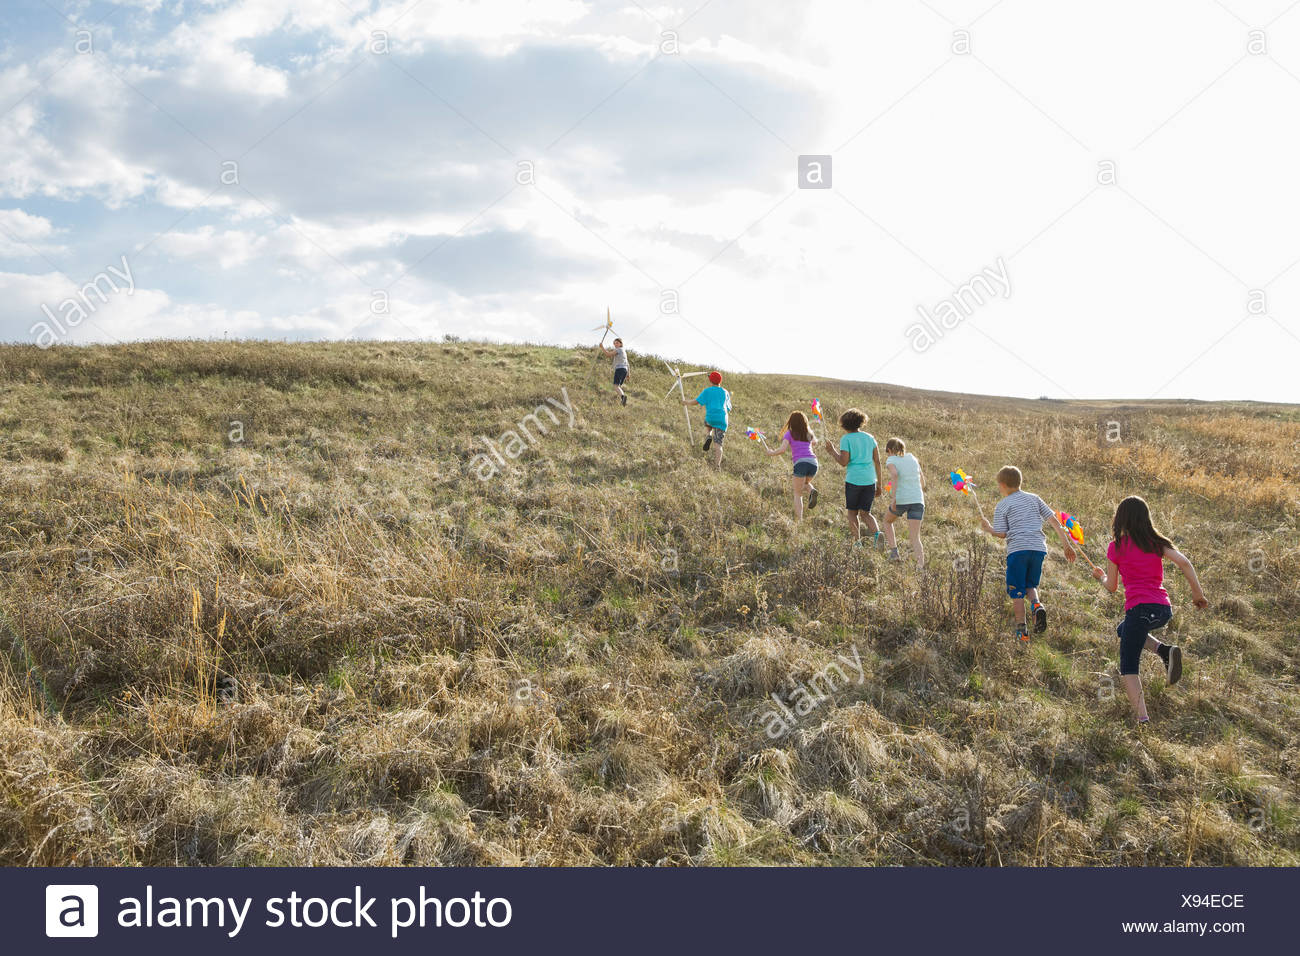 Kids walking up hill with pinwheels and windmills - Stock Image